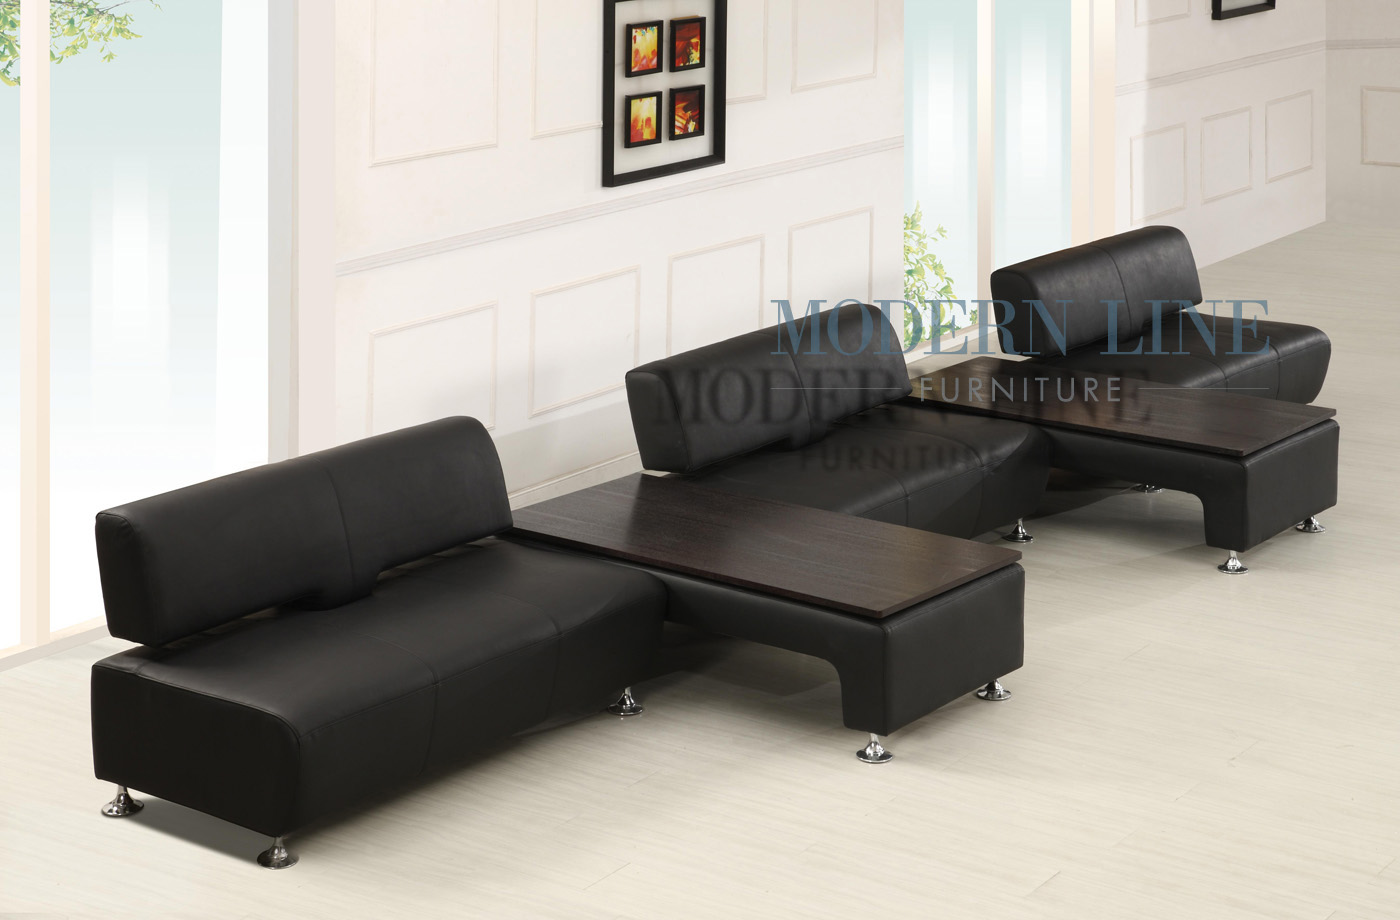 Modern Line Furniture Commercial Furniture Custom Made  : modern black leather long sofa with bench chaises 21 from www.modernlinefurniture.com size 1400 x 920 jpeg 186kB